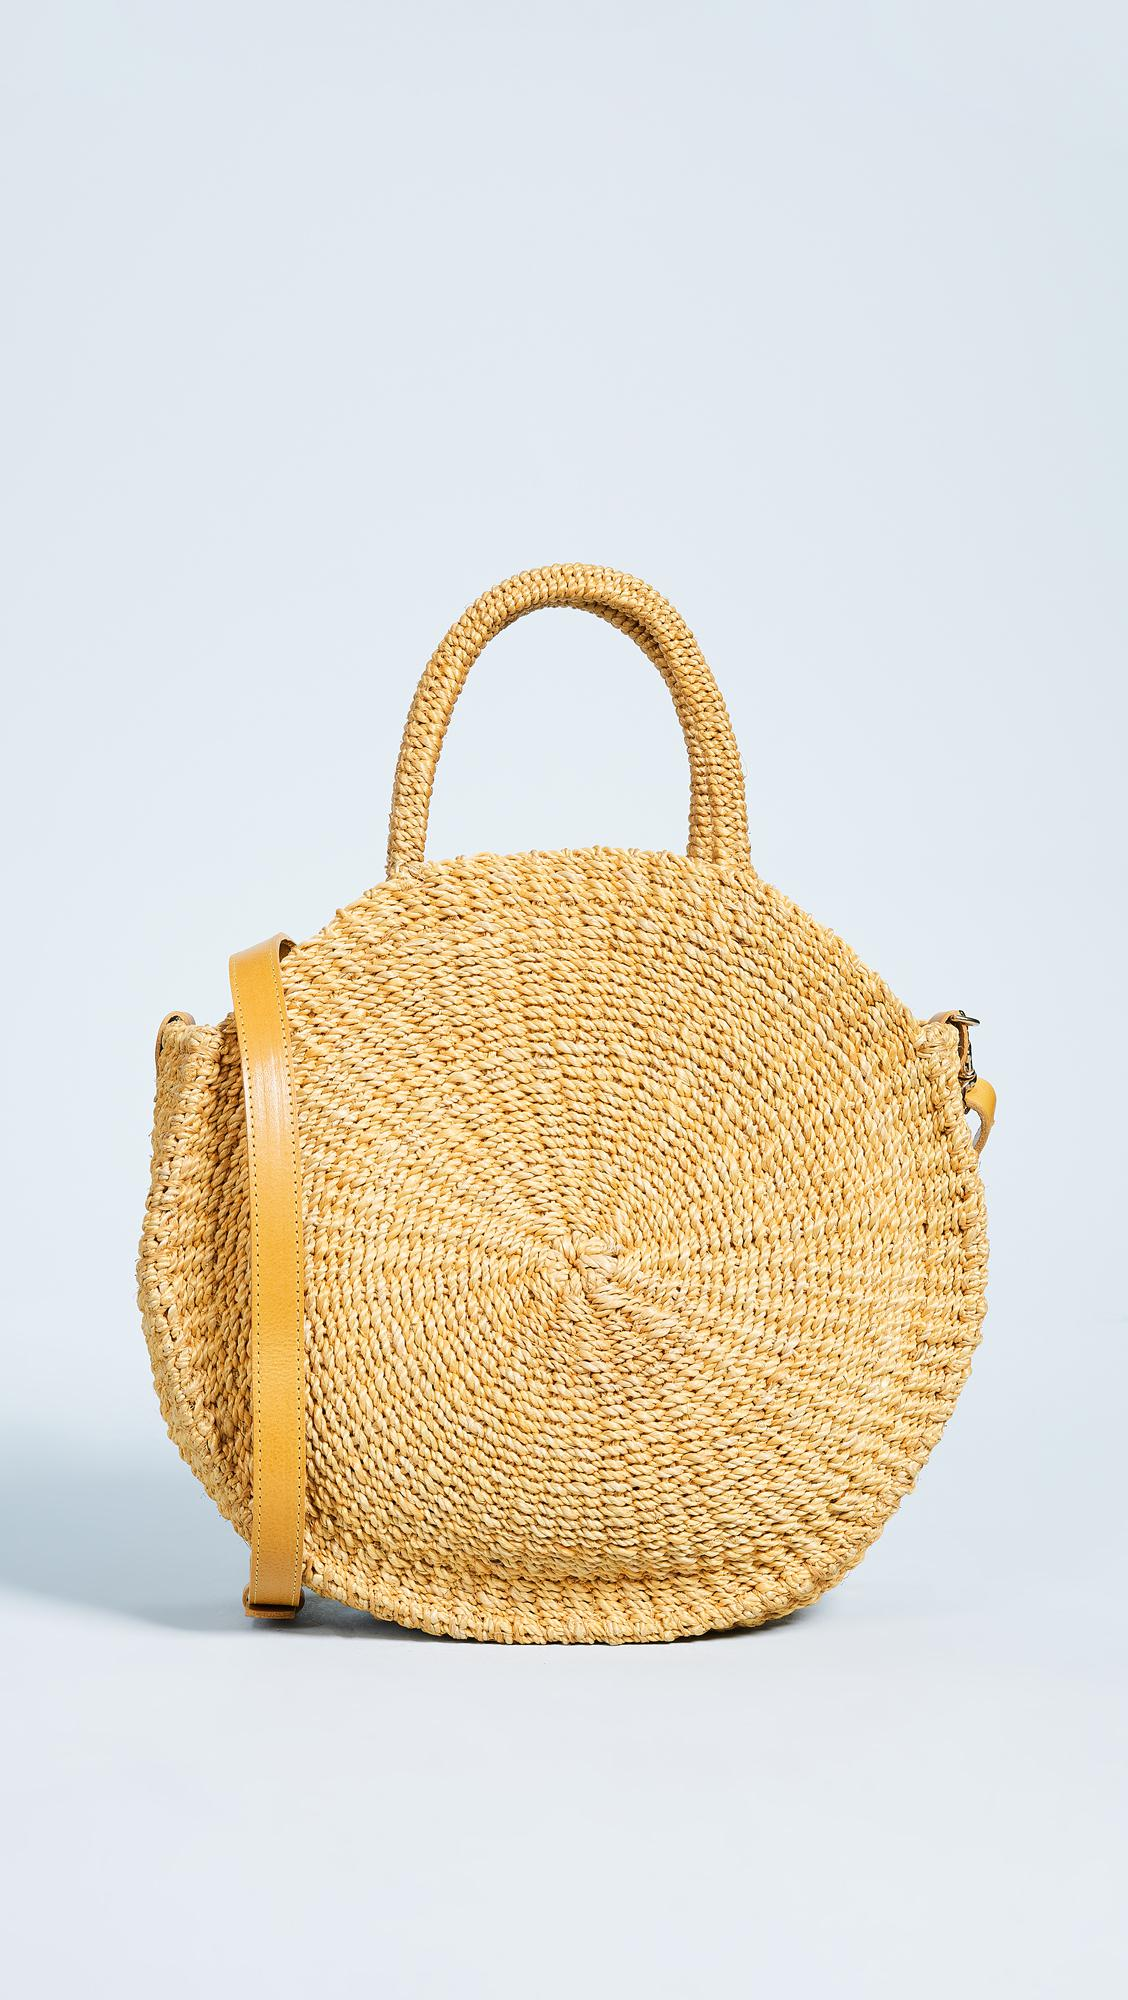 0209992b43 Clare V. Alice Maison Tote Bag in Yellow - Lyst